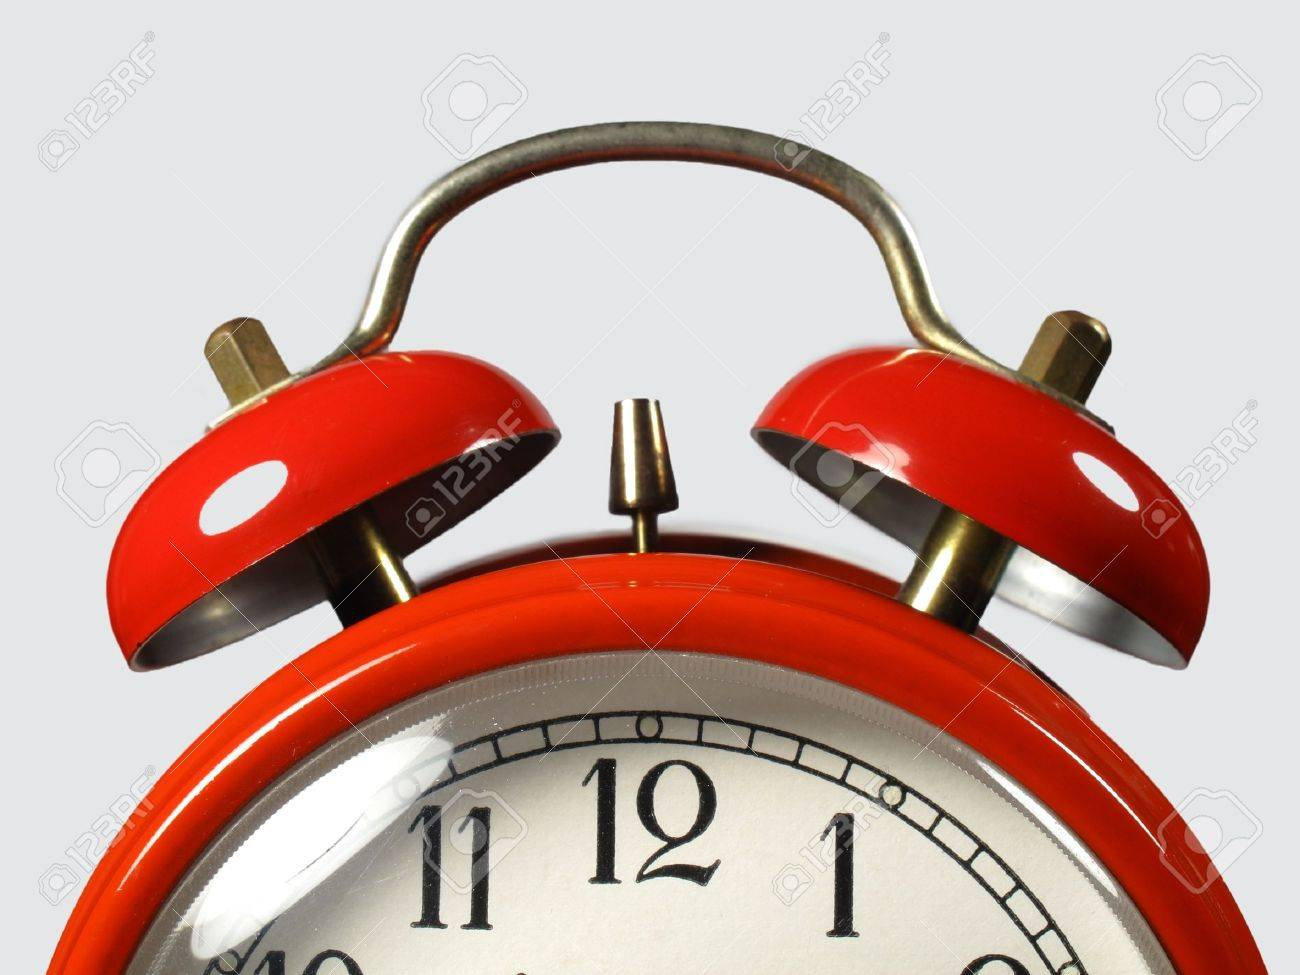 Alarm clock in the foreground Stock Photo - 9334609